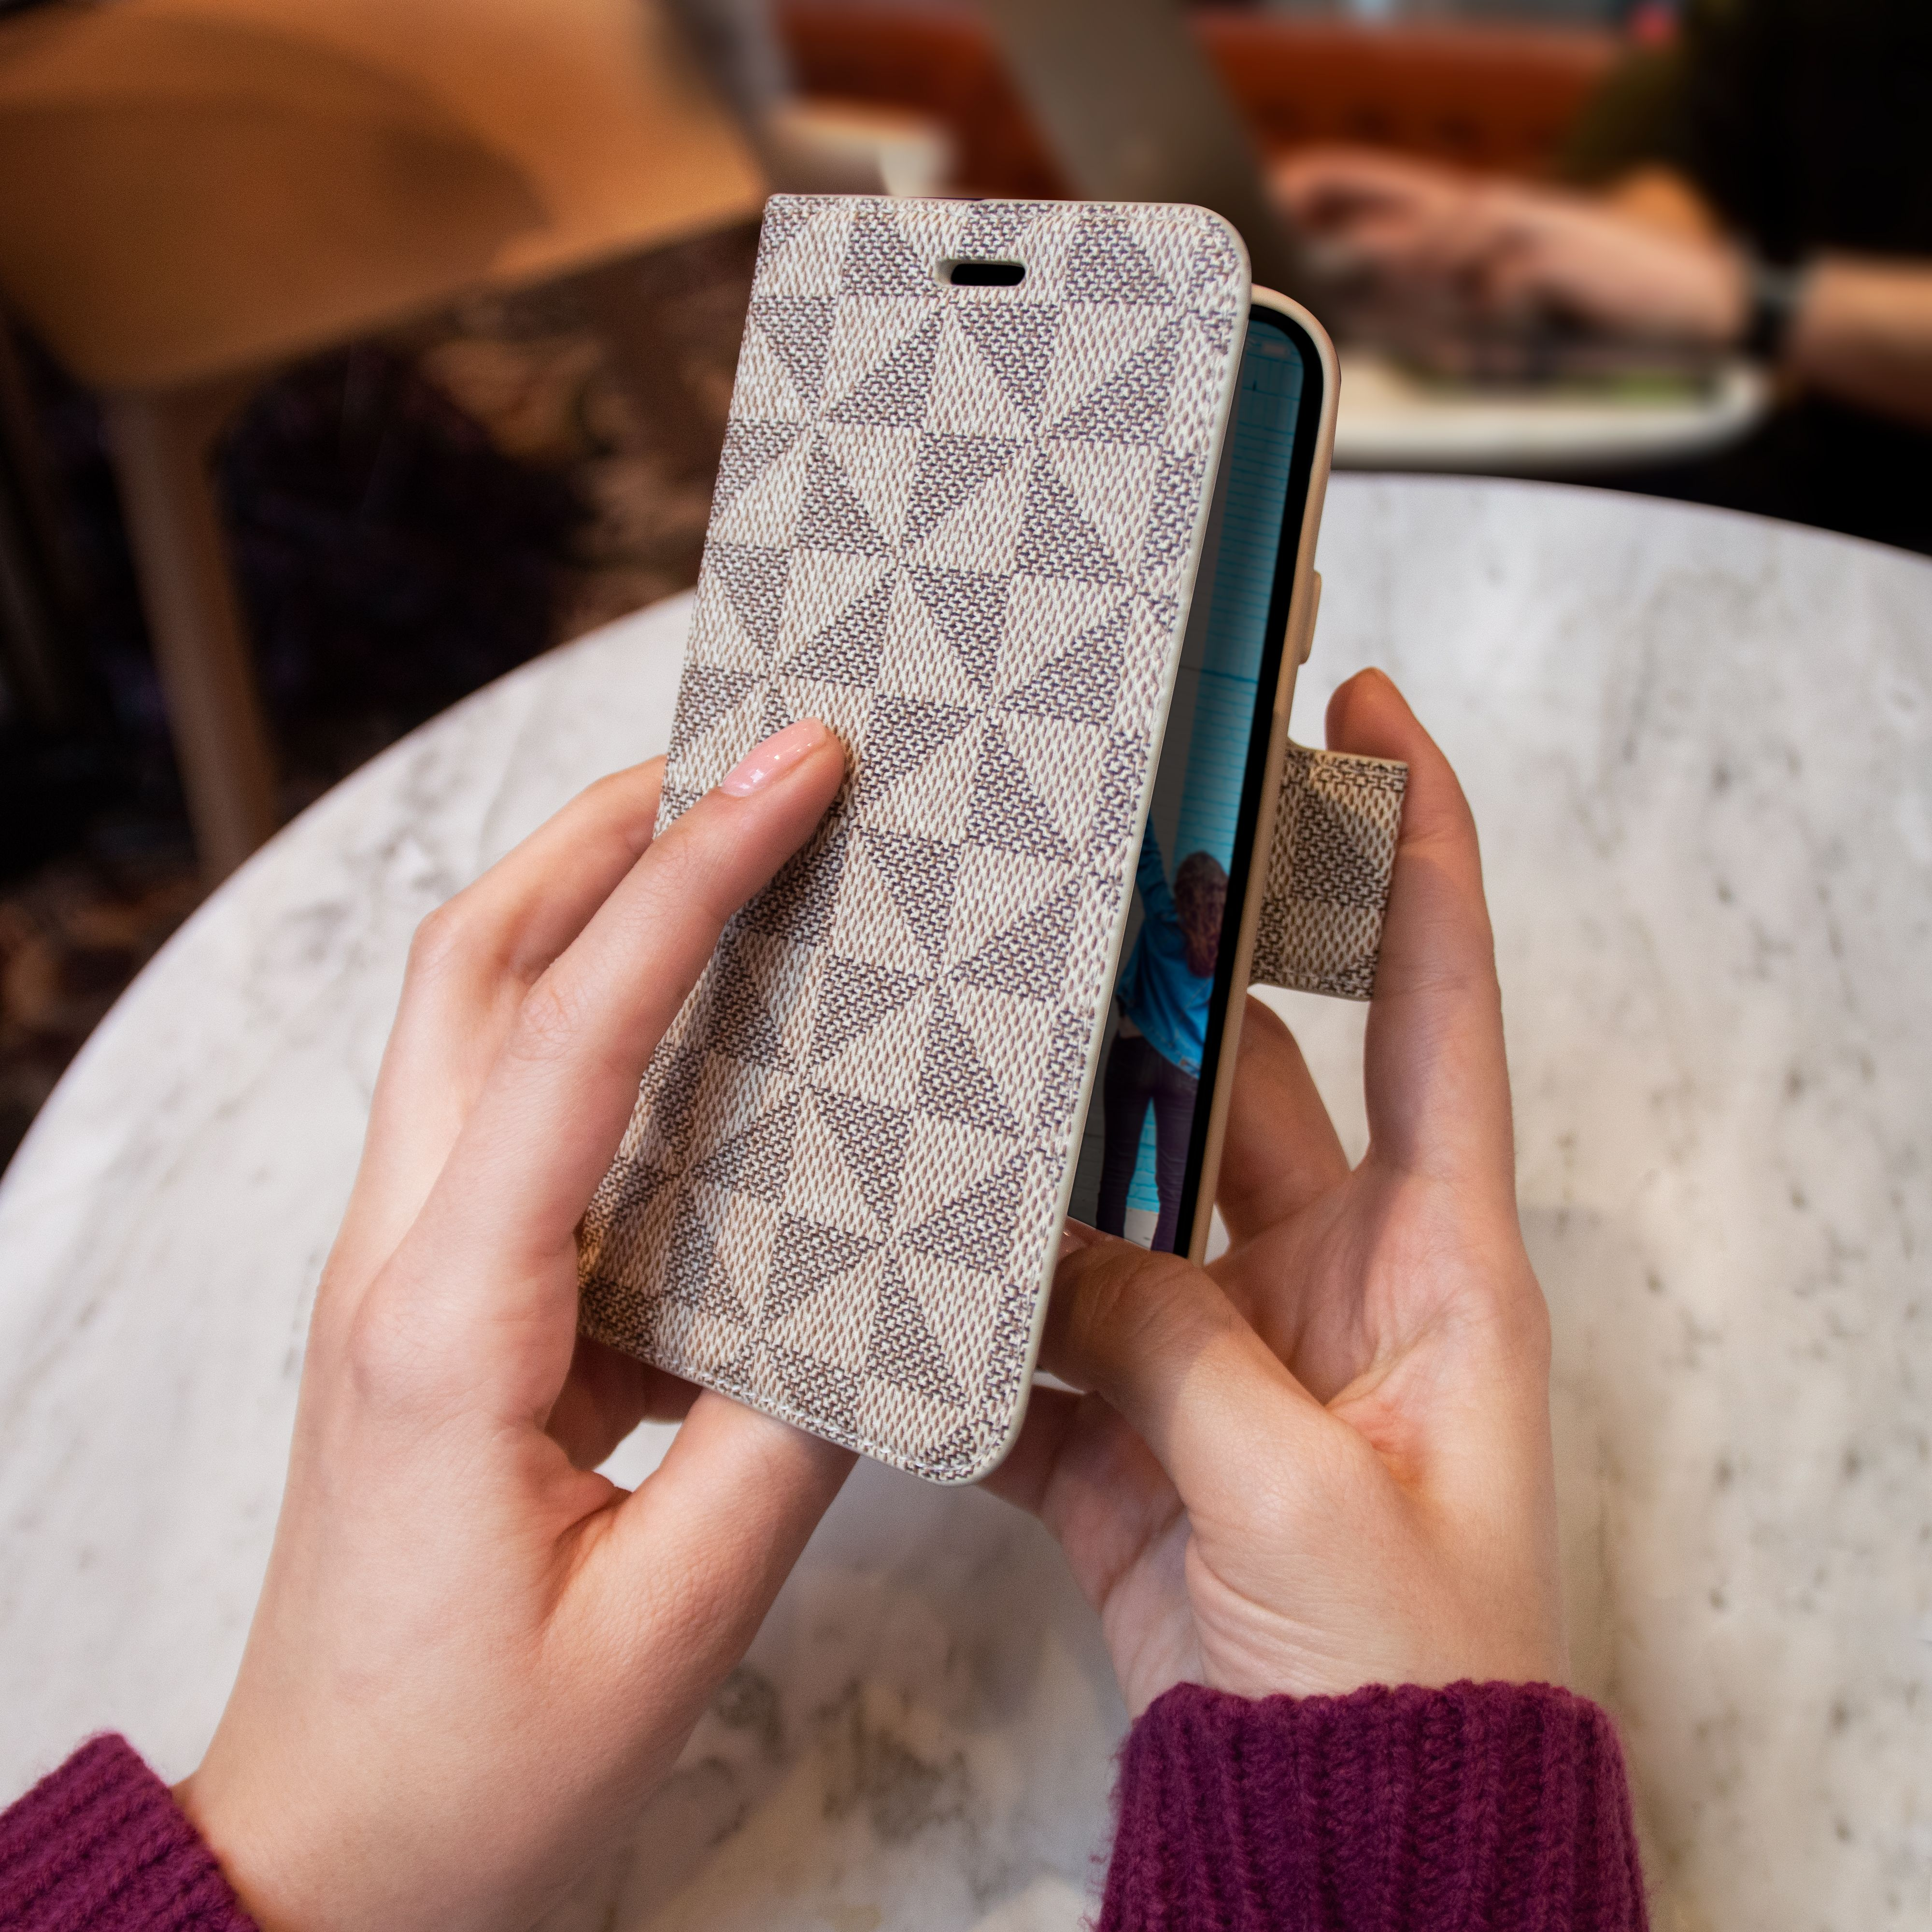 This convertible #phonecase becomes a stand for your phone and it has shock absorption that protects it from damage. The best part? It's functional plus stylish! 😎 - #believeinbetter #leadtheway #bethechange #casecoinc #casecomission #onecaseatatime #ecofriendly #ecofriendlyproducts #sustainability #zerowaste #savethewaves #sustainabilitymatters #gogreen #holidaysdeals #christmasdeals #iphonecase #reducereuserecycle #iphoneaccessories #androidcases